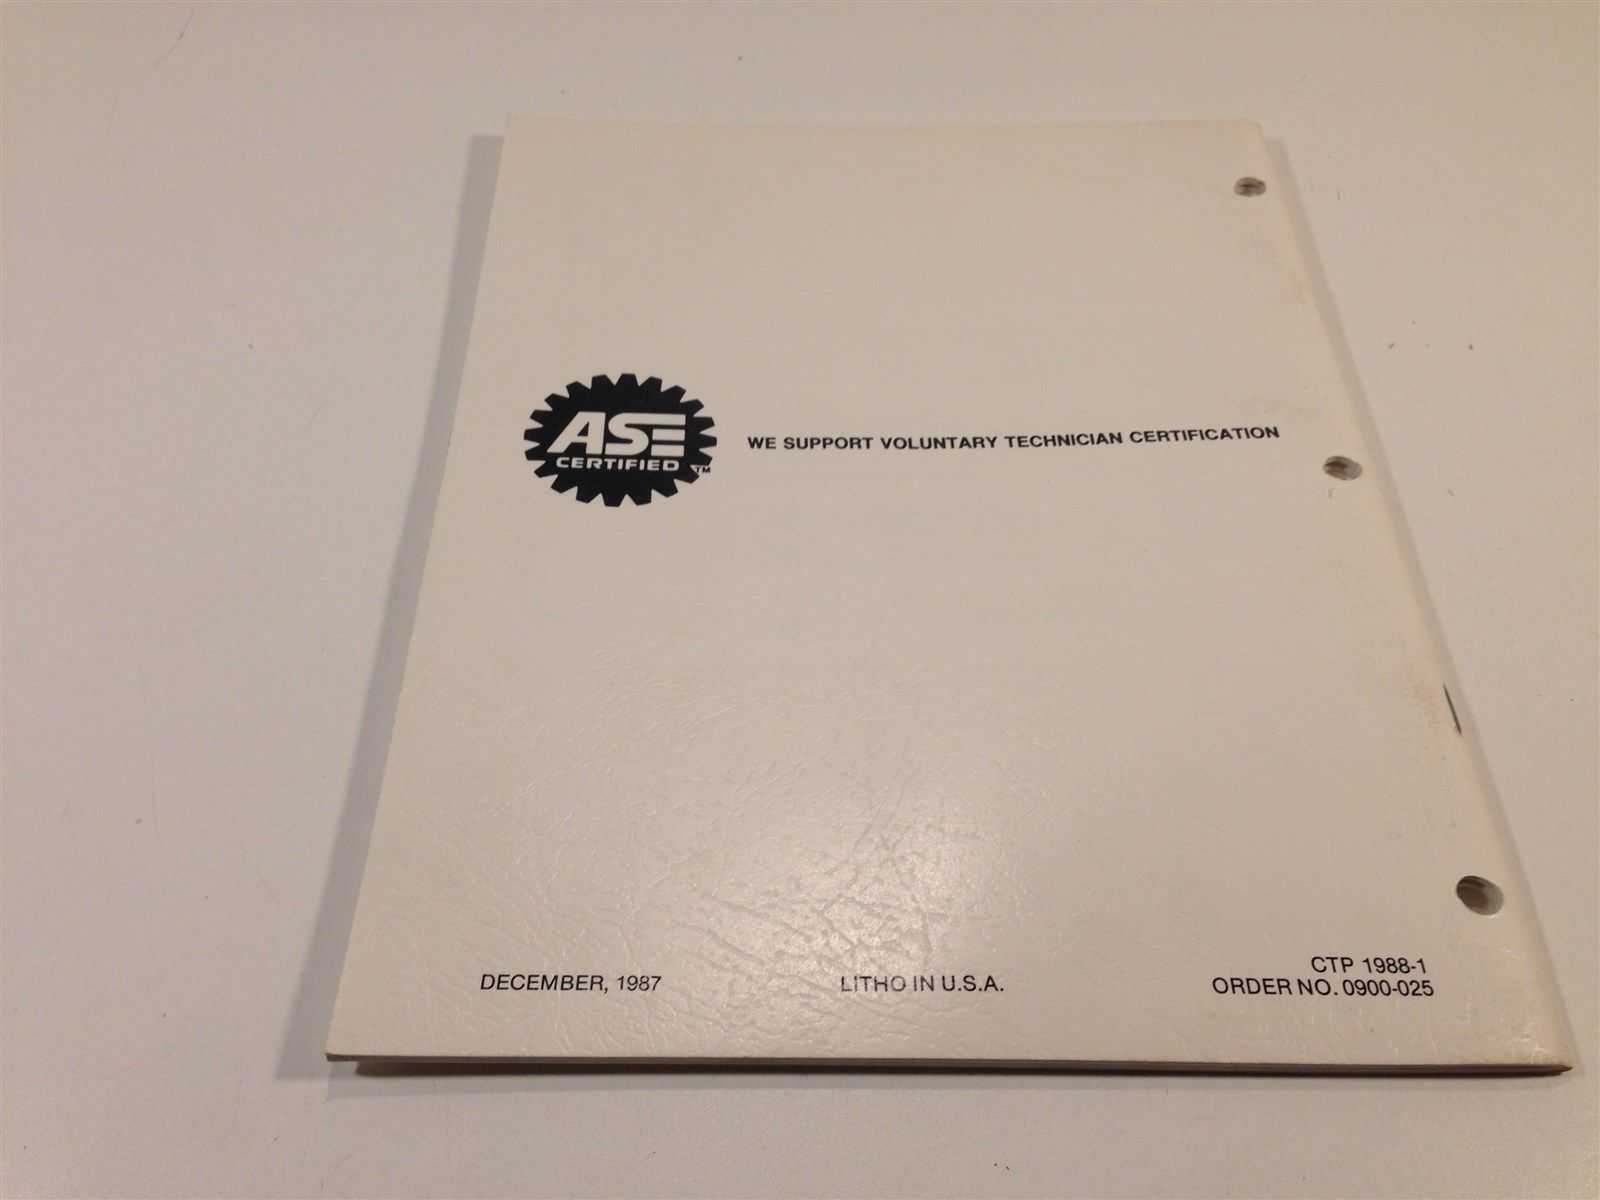 1988 Ford Air inlet Control Systems Manual 0900-25